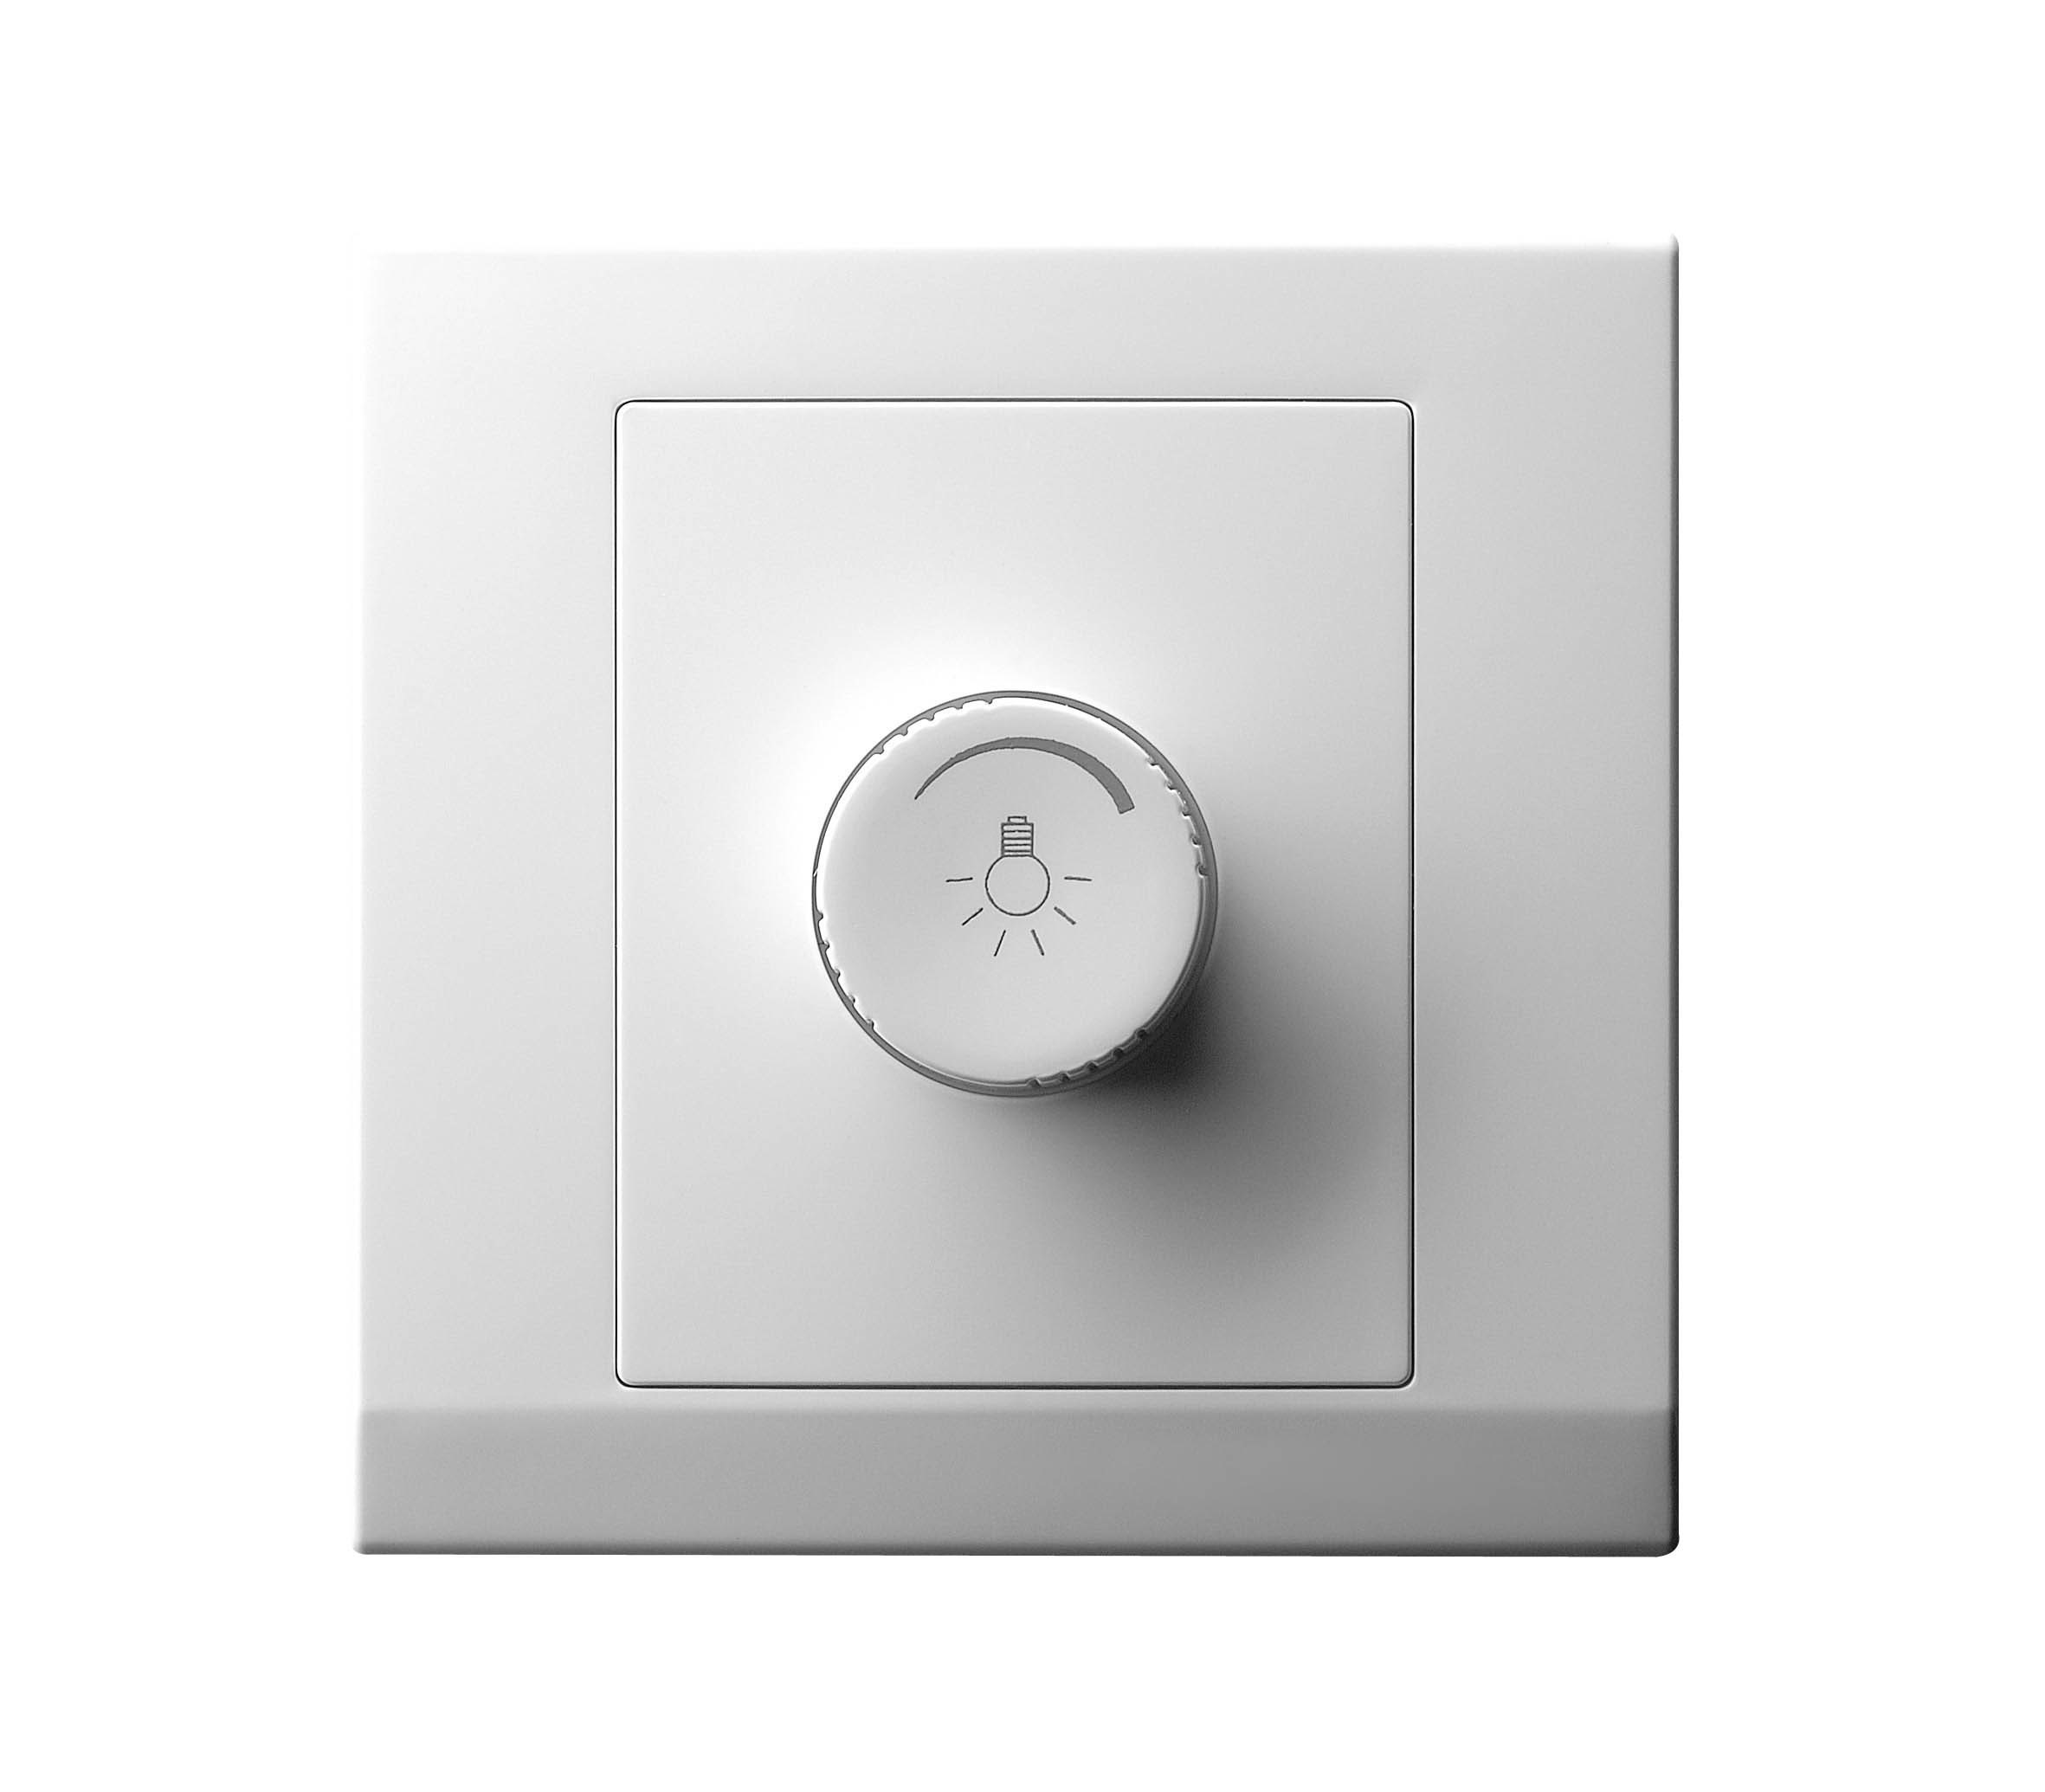 smarthome dimensions switchlinc smart wire dimmer rf remote light insteon almond right control switch lighting